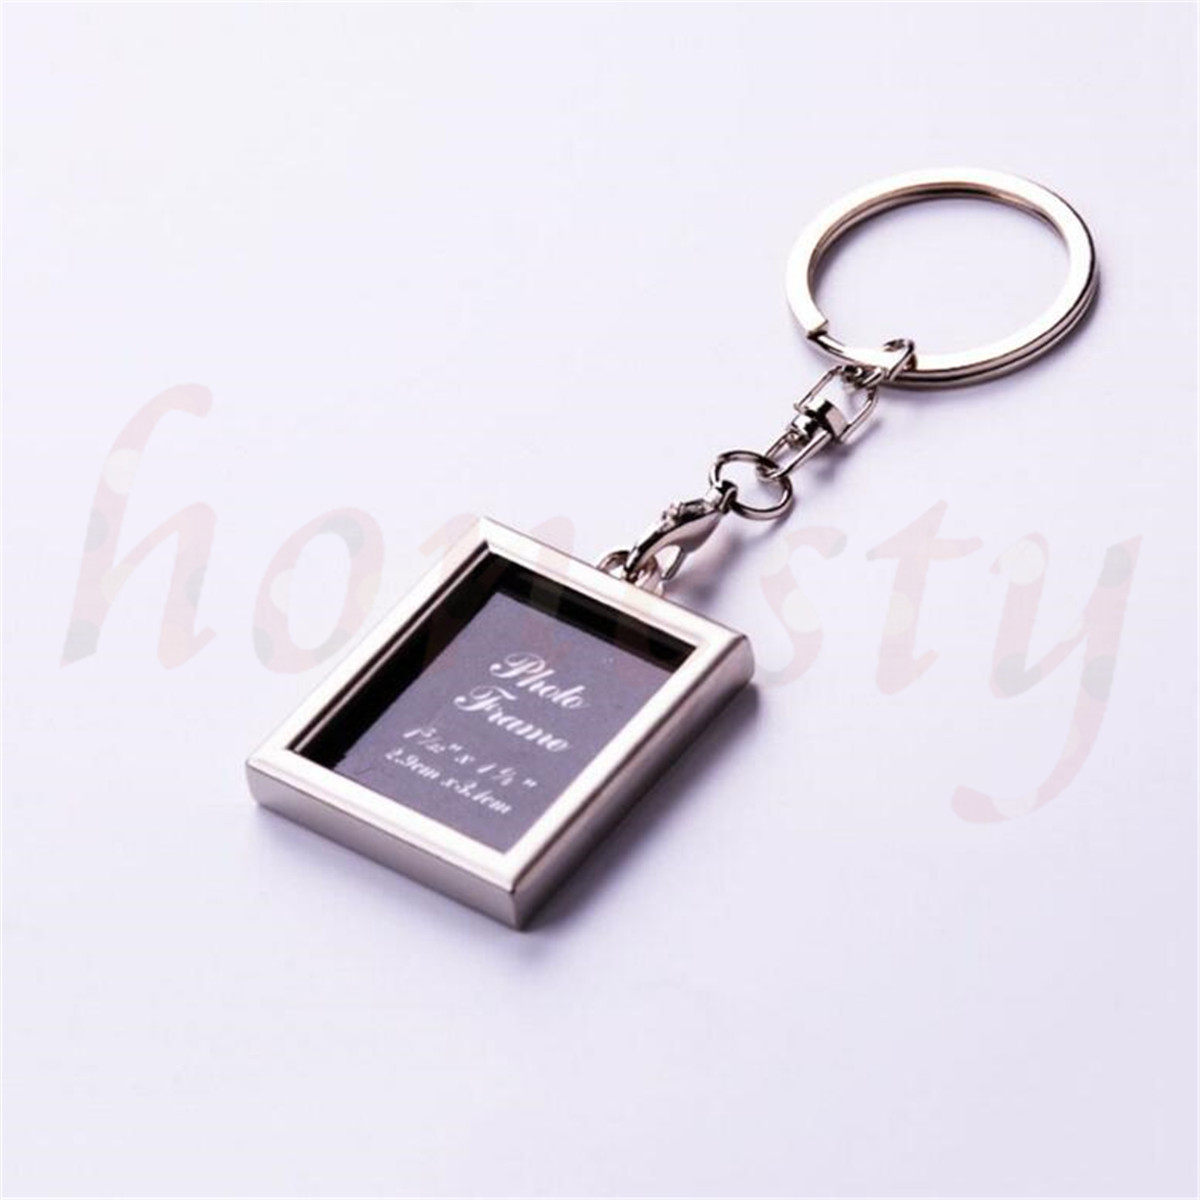 Diy insert photo picture frame custom keyring key ring keychain diy insert photo picture frame custom keyring key ring keychain gift 7 shapes jeuxipadfo Choice Image